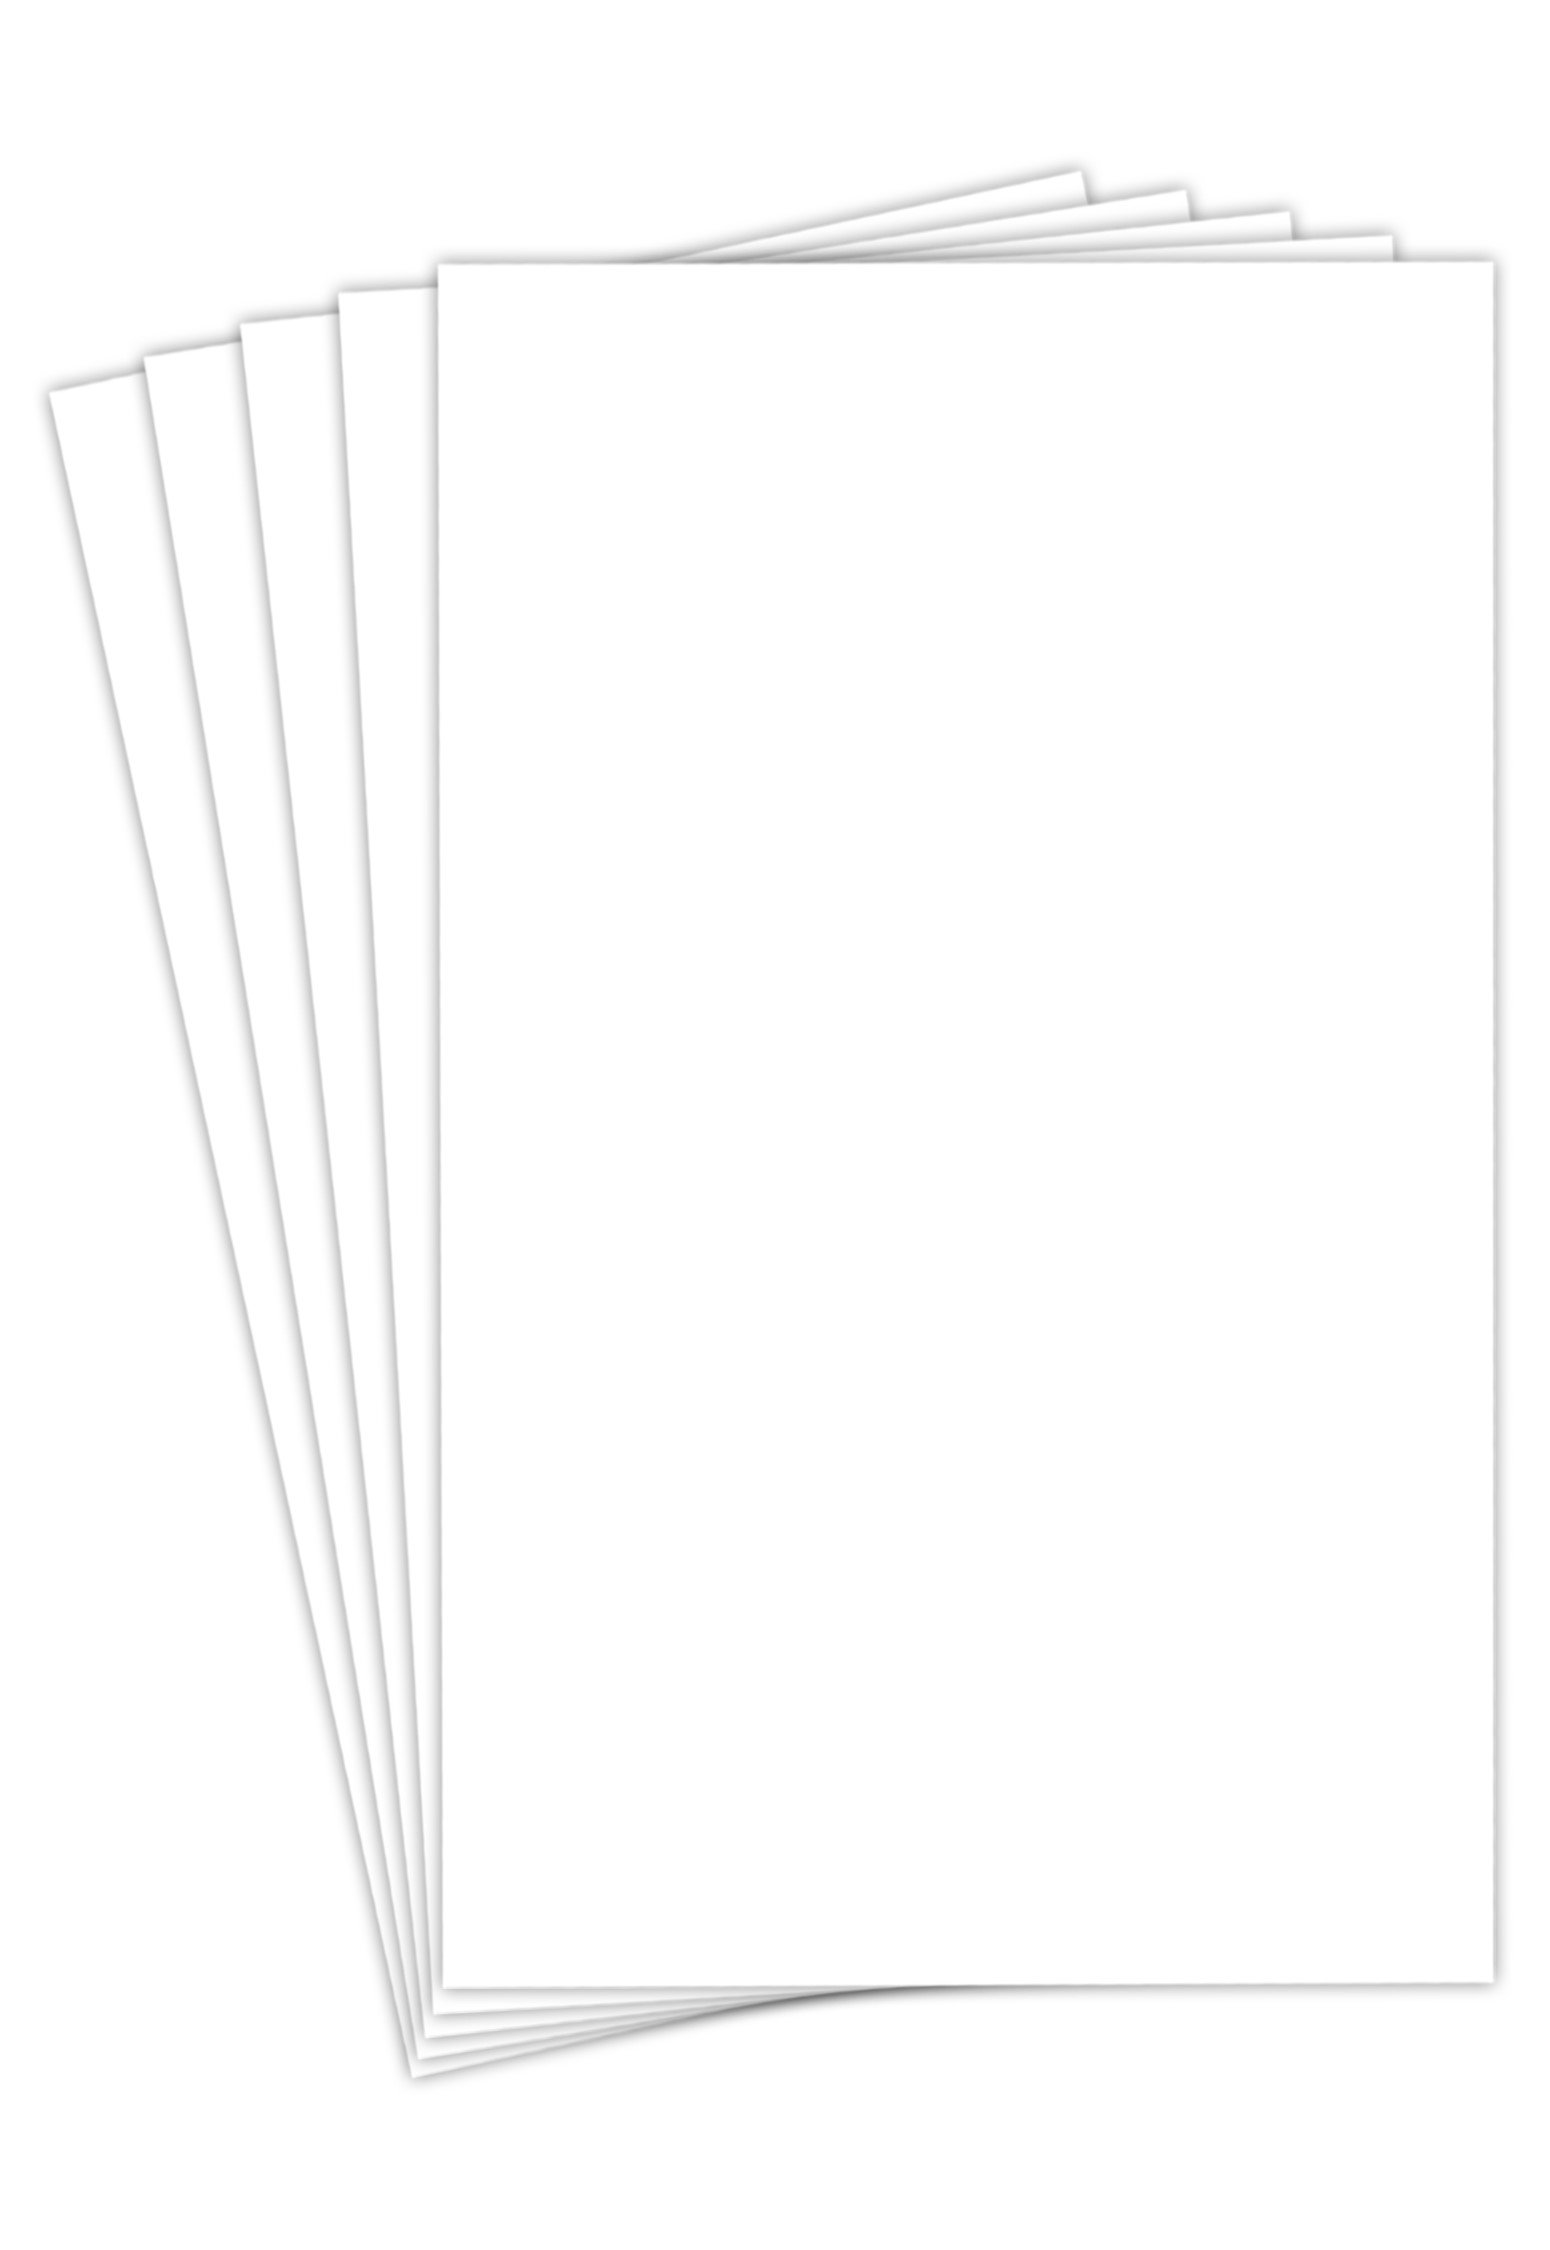 Superfine Printing Springhill Index Digital Cardstock Paper, 110 Lbs, 8.5 X 14 Inch, 50 Sheets / Pack - White